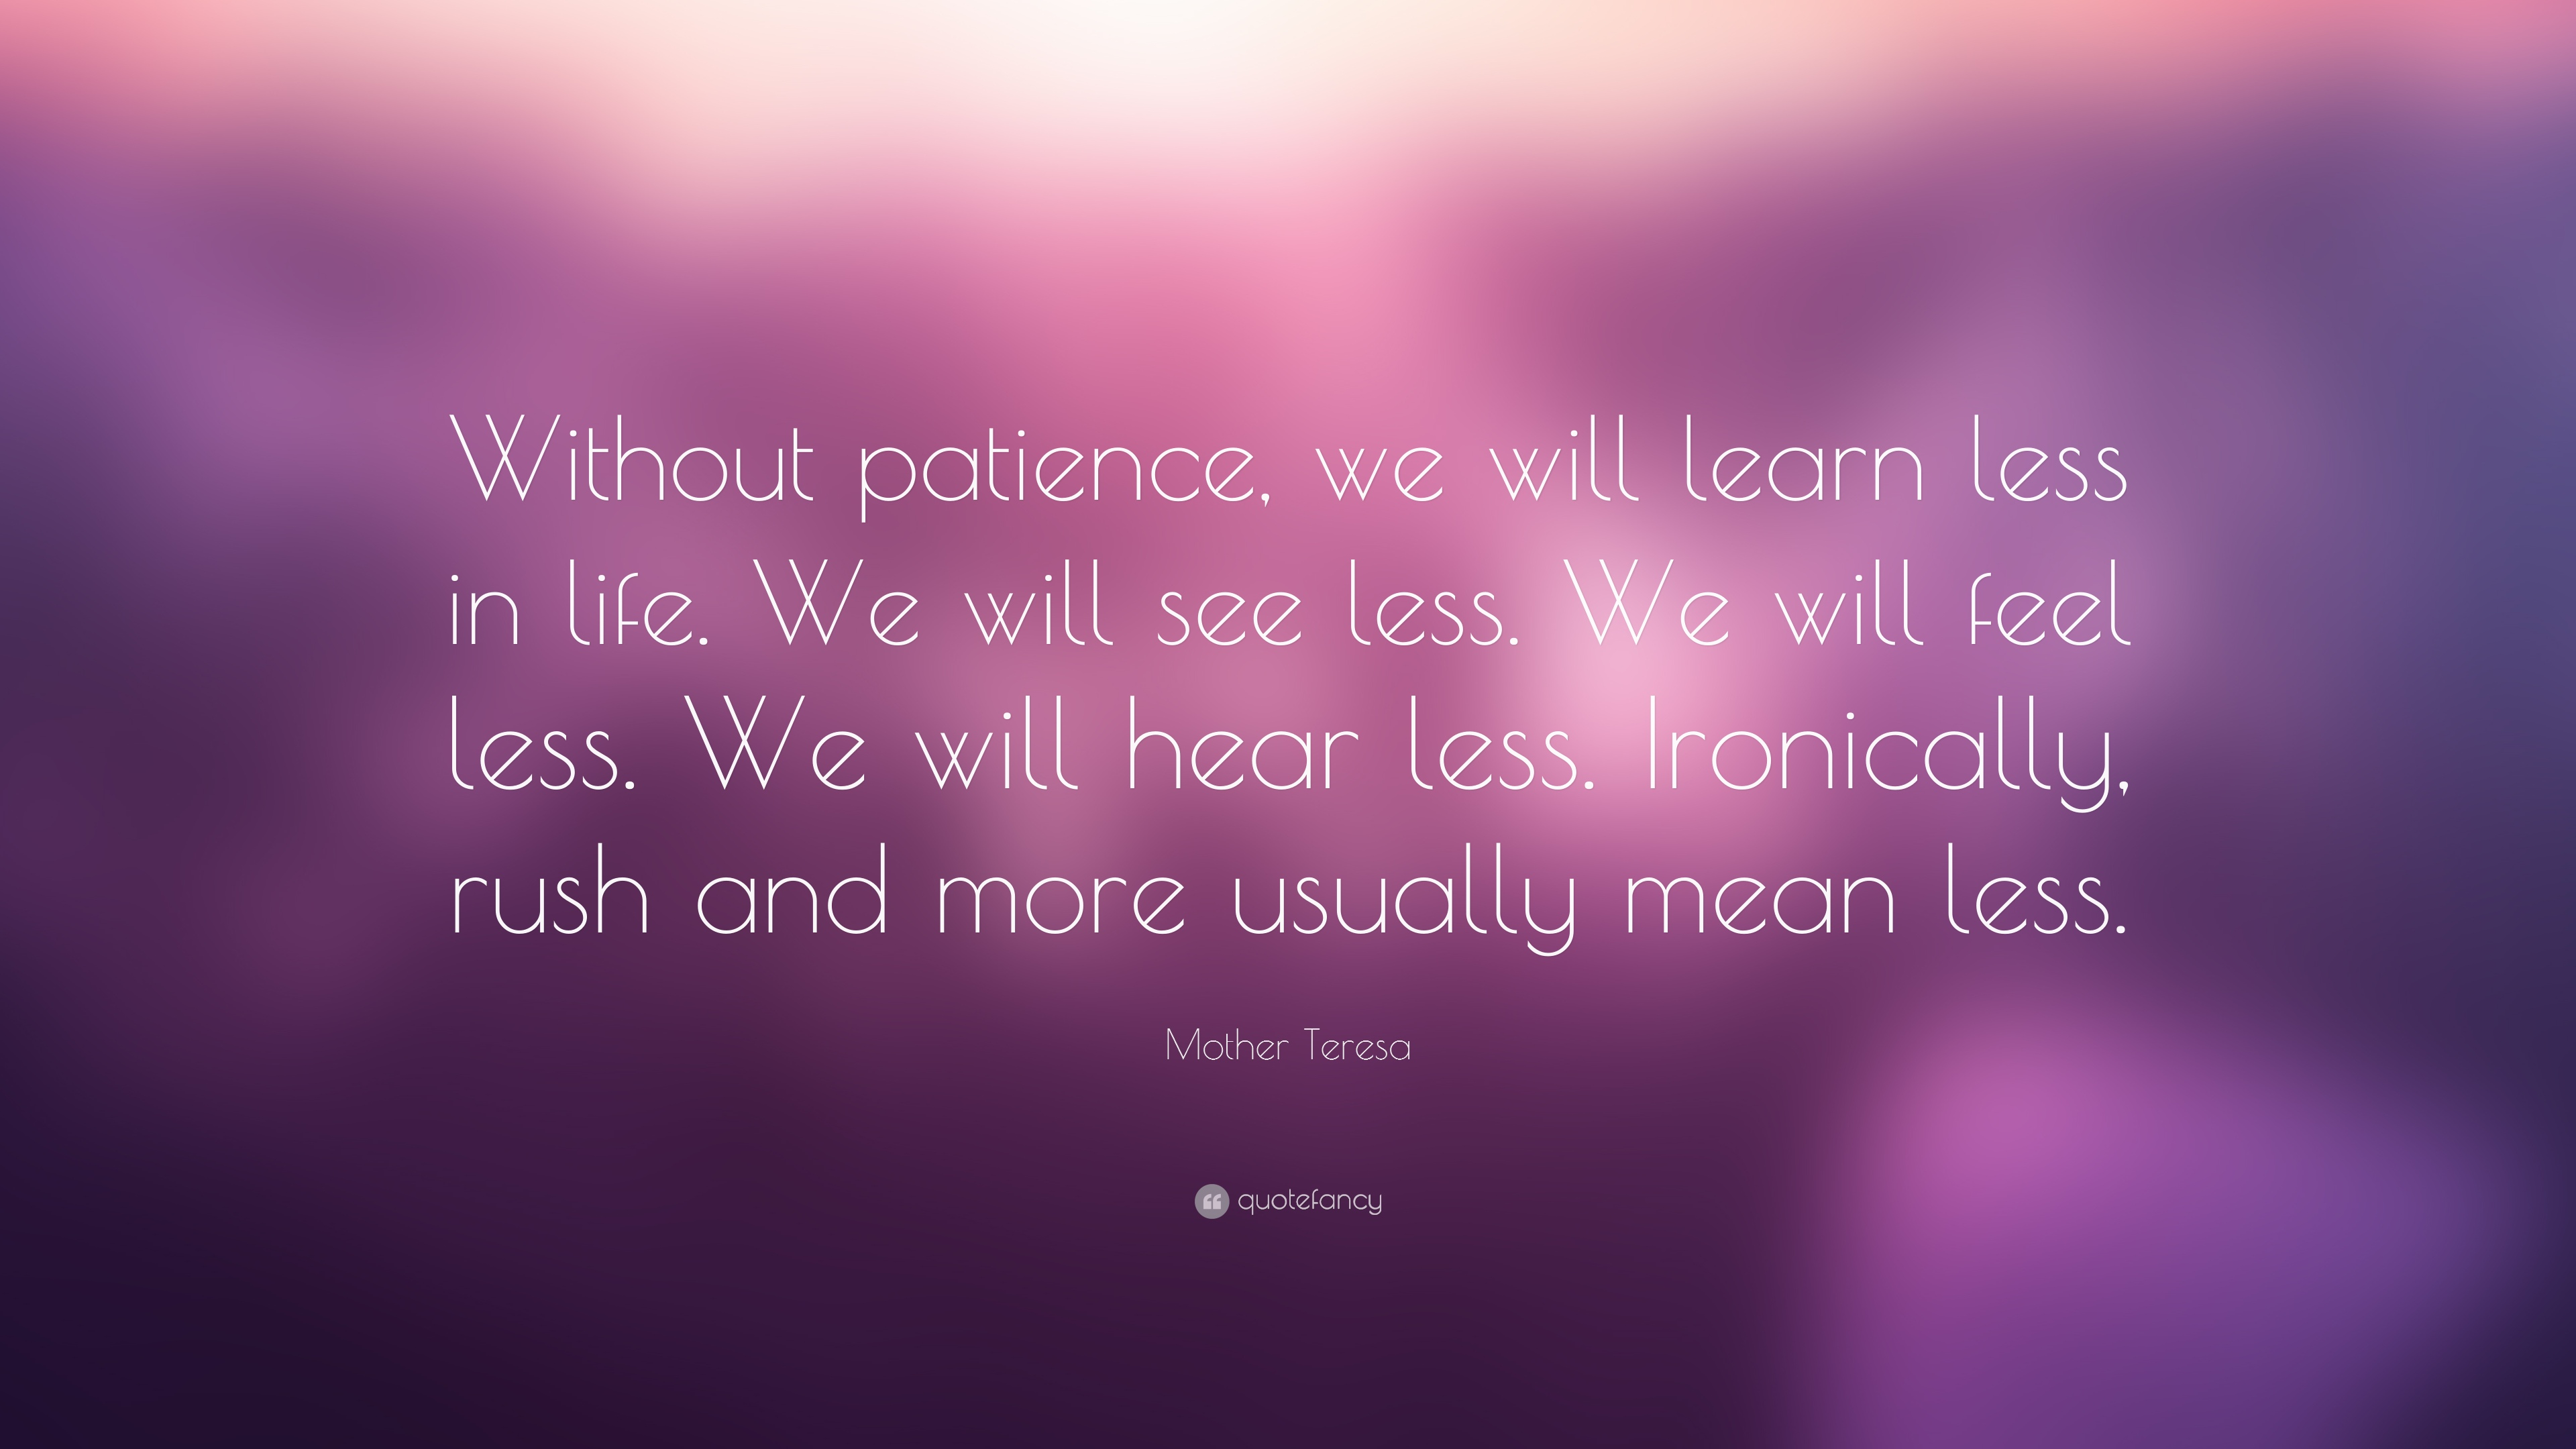 Mother Teresa Quote: U201cWithout Patience, We Will Learn Less In Life. We